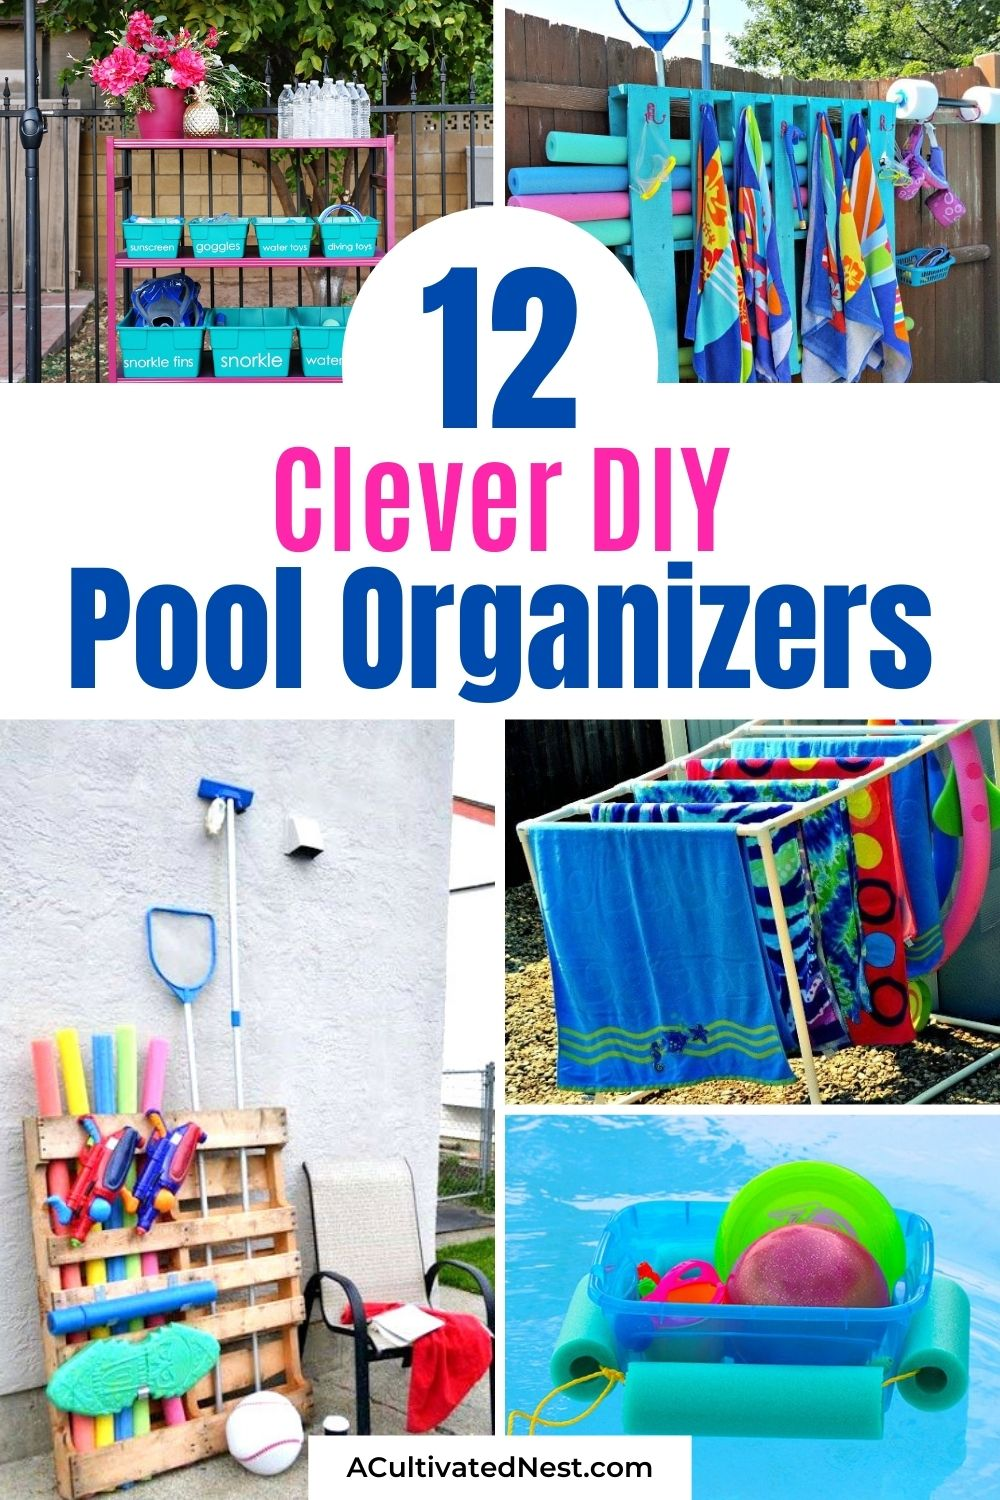 12 Clever DIY Pool Organizers- If you need to get your pool supplies and pool toys in order, then you need to check out these clever DIY pool organizers! They'll have your yard ready for swimming season and summer guests in no time! | summer organizing tips, how to organize pool toys, #poolOrganization #organizingTips #diyOrganizer #organize #ACultivatedNest